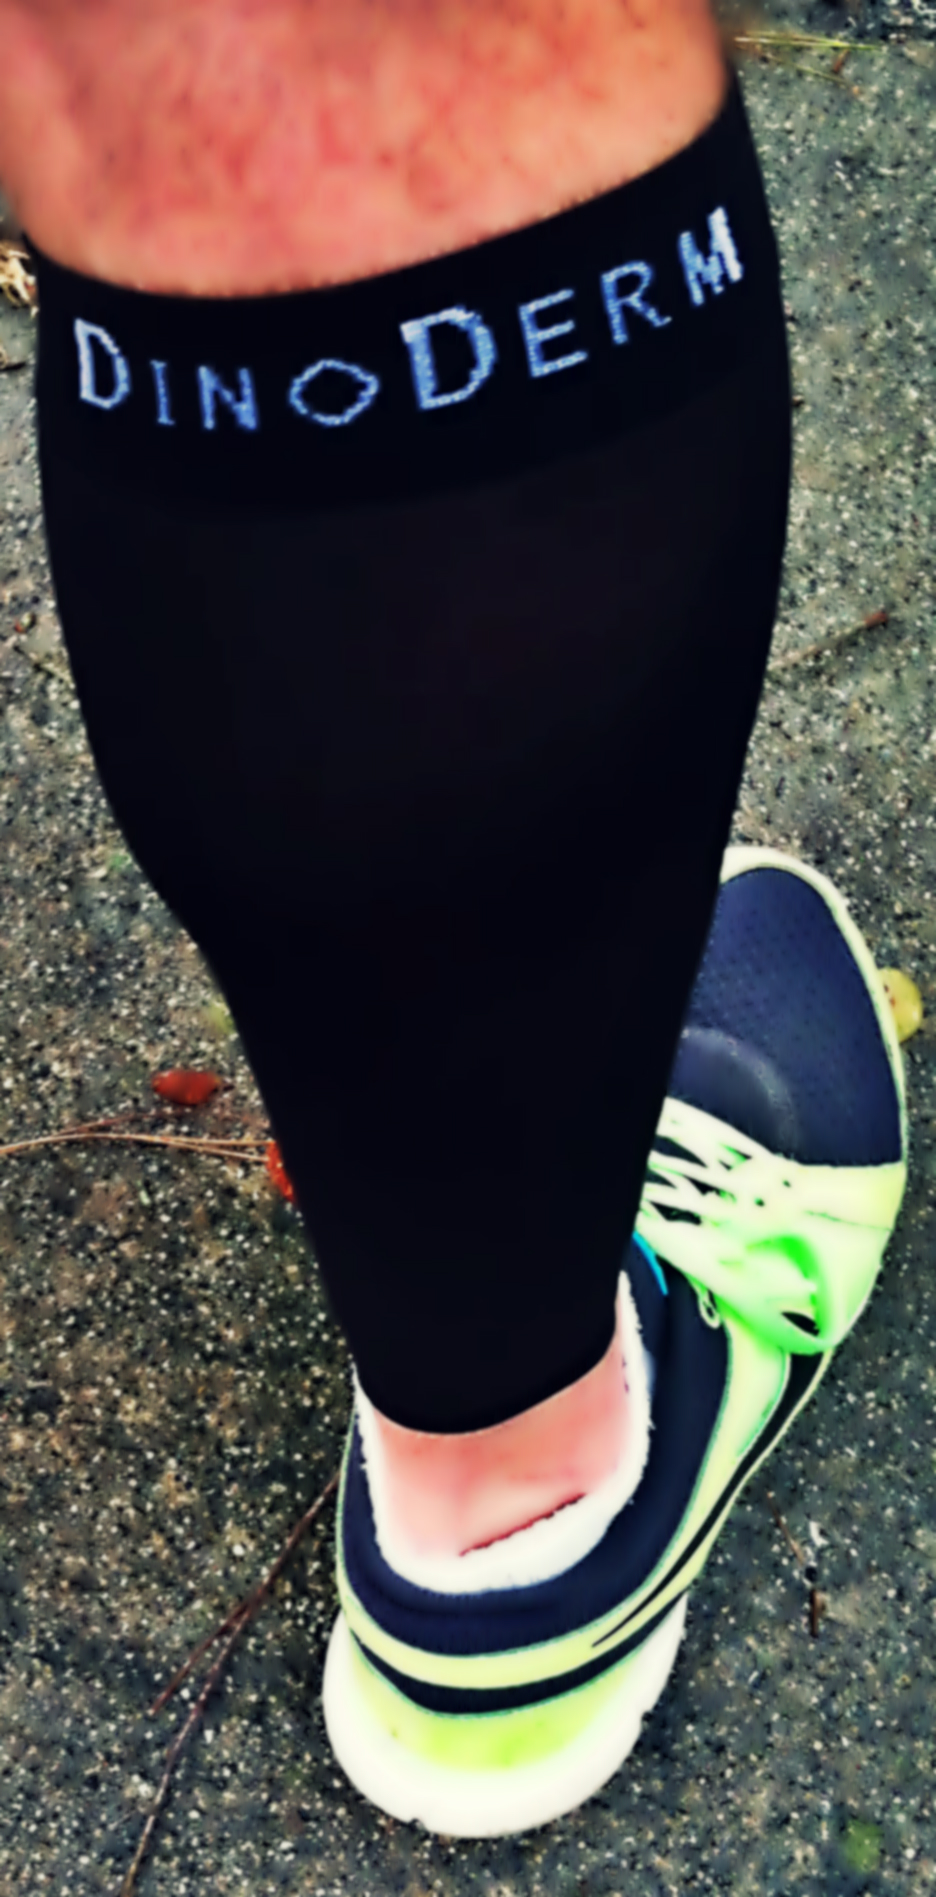 Compression sleeves in action.